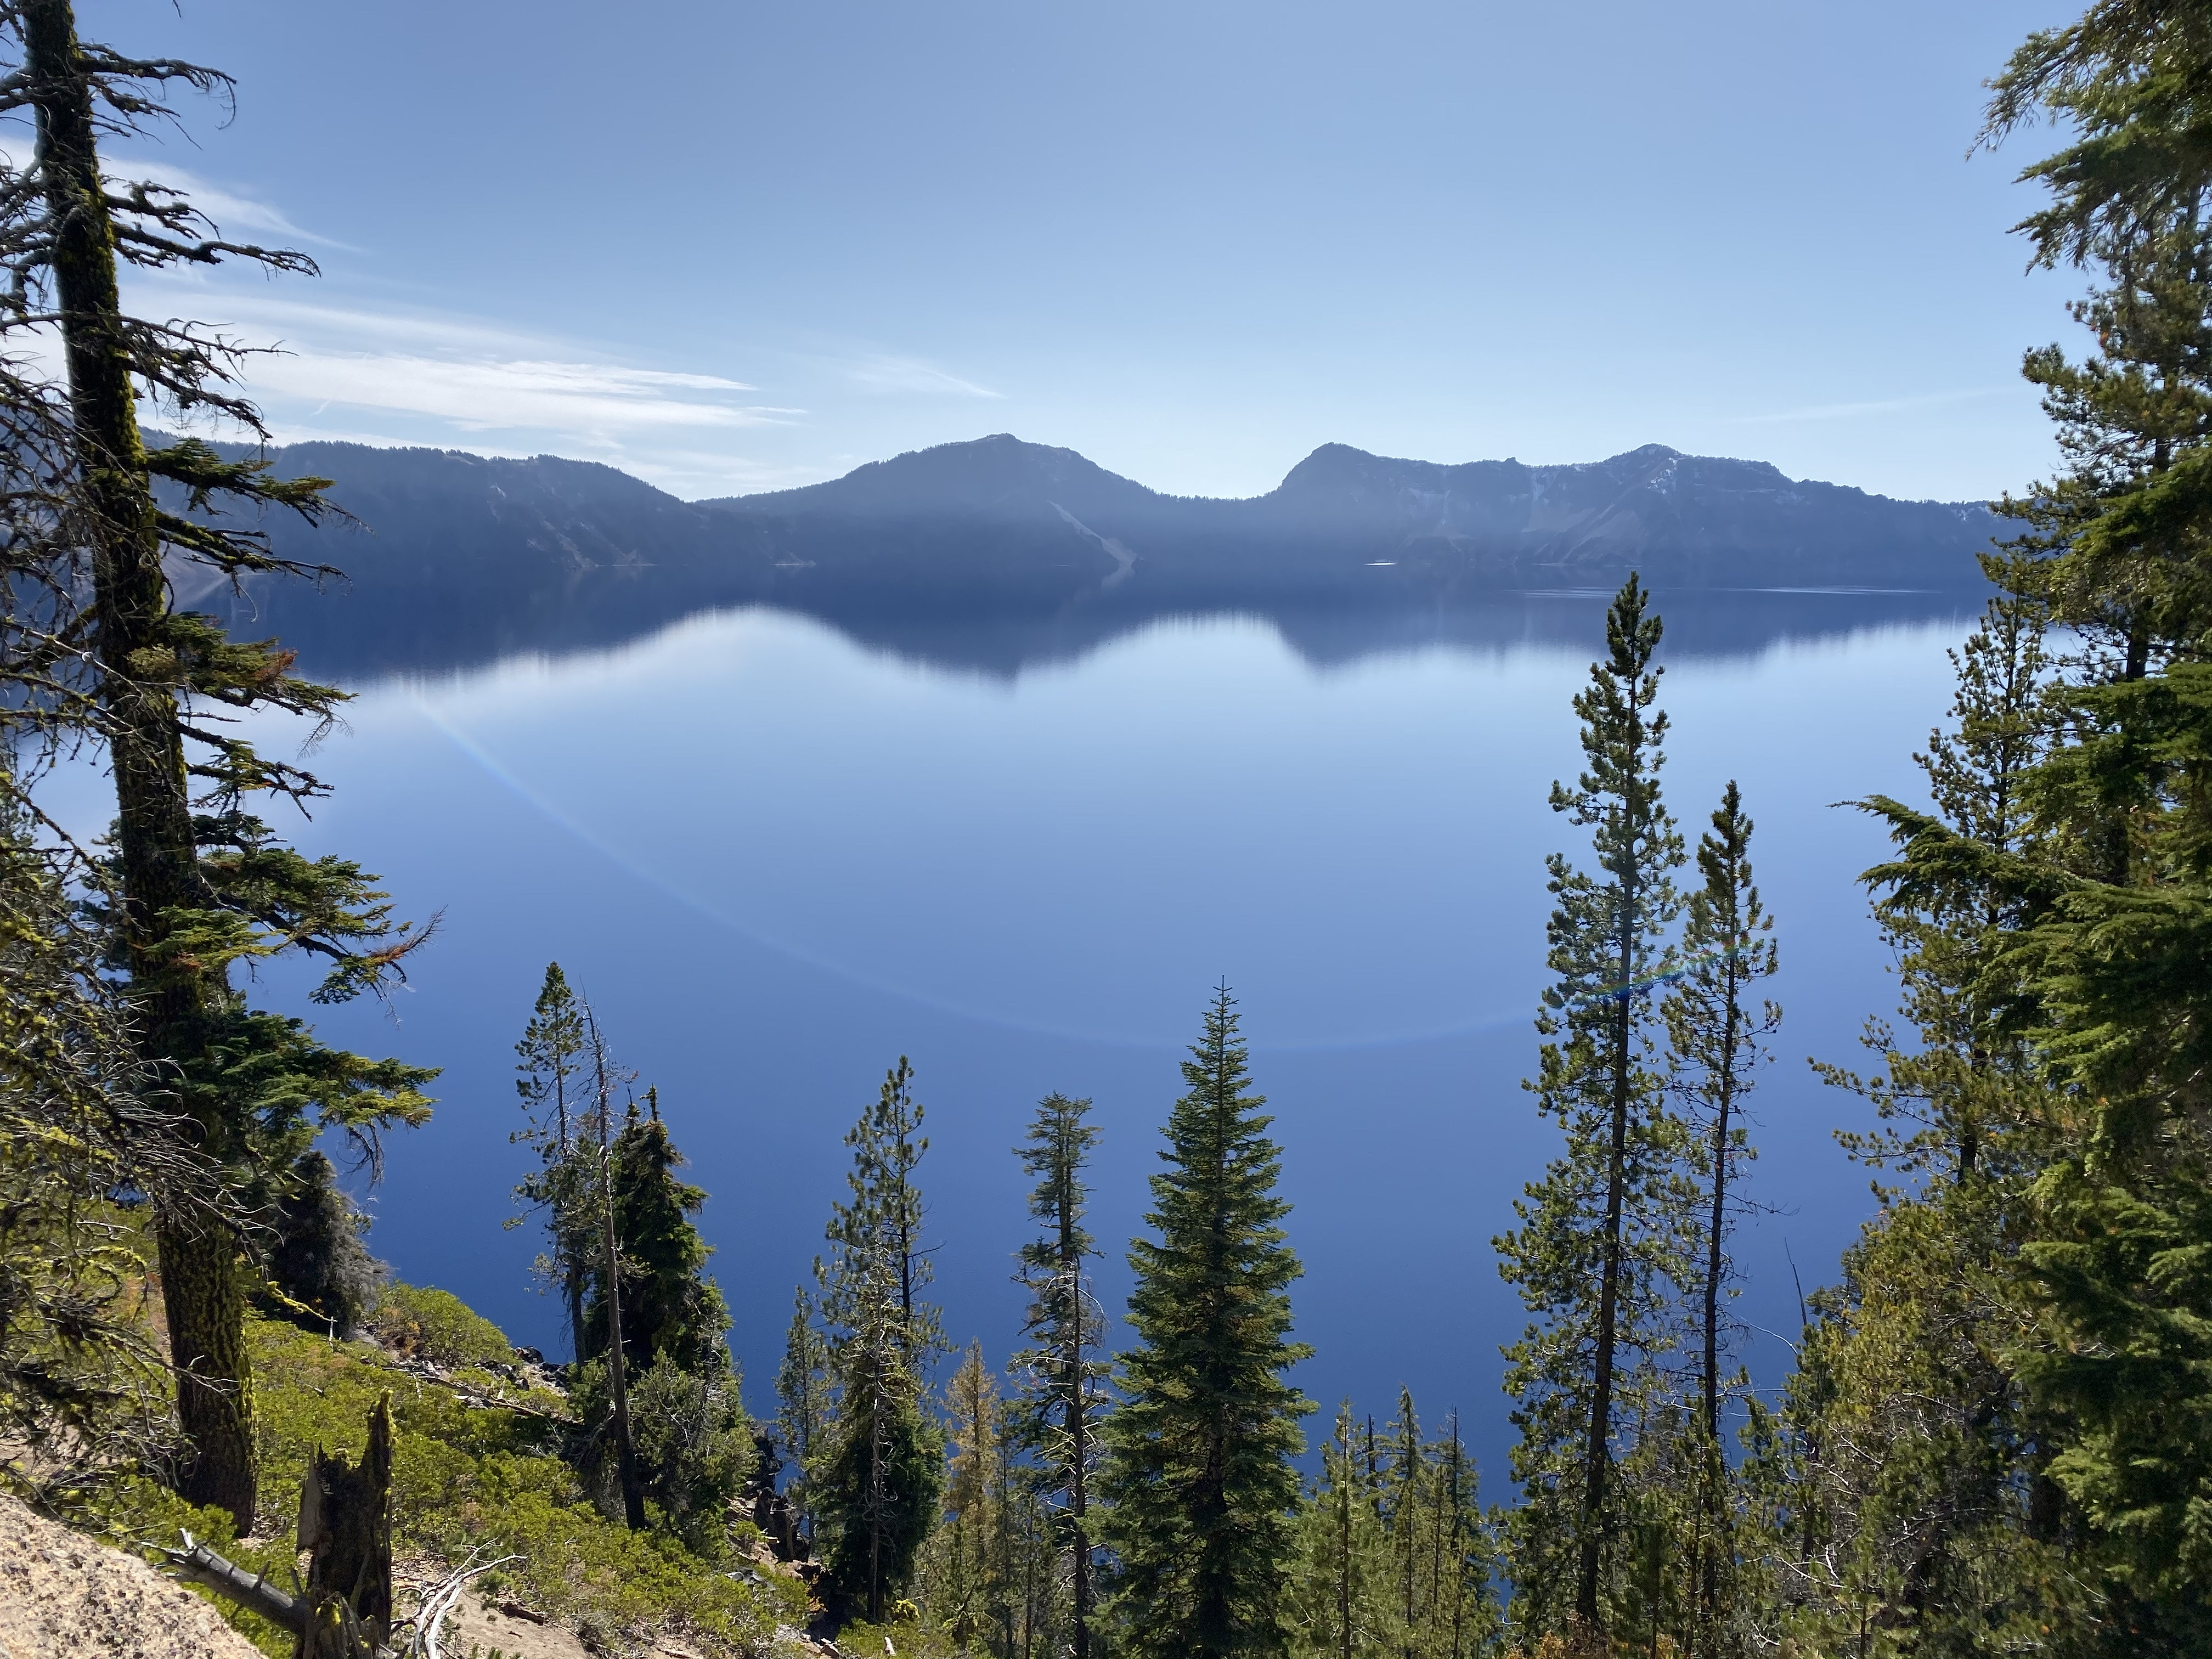 Crater Lake National Park, Oregon — without a doubt one of the most beautiful places I got to see this year! I spent two months in Bend, Oregon at the end of the year — I loved it there for a variety of reasons and it felt great to be in one place for that long and really get to live at a slower pace for awhile.